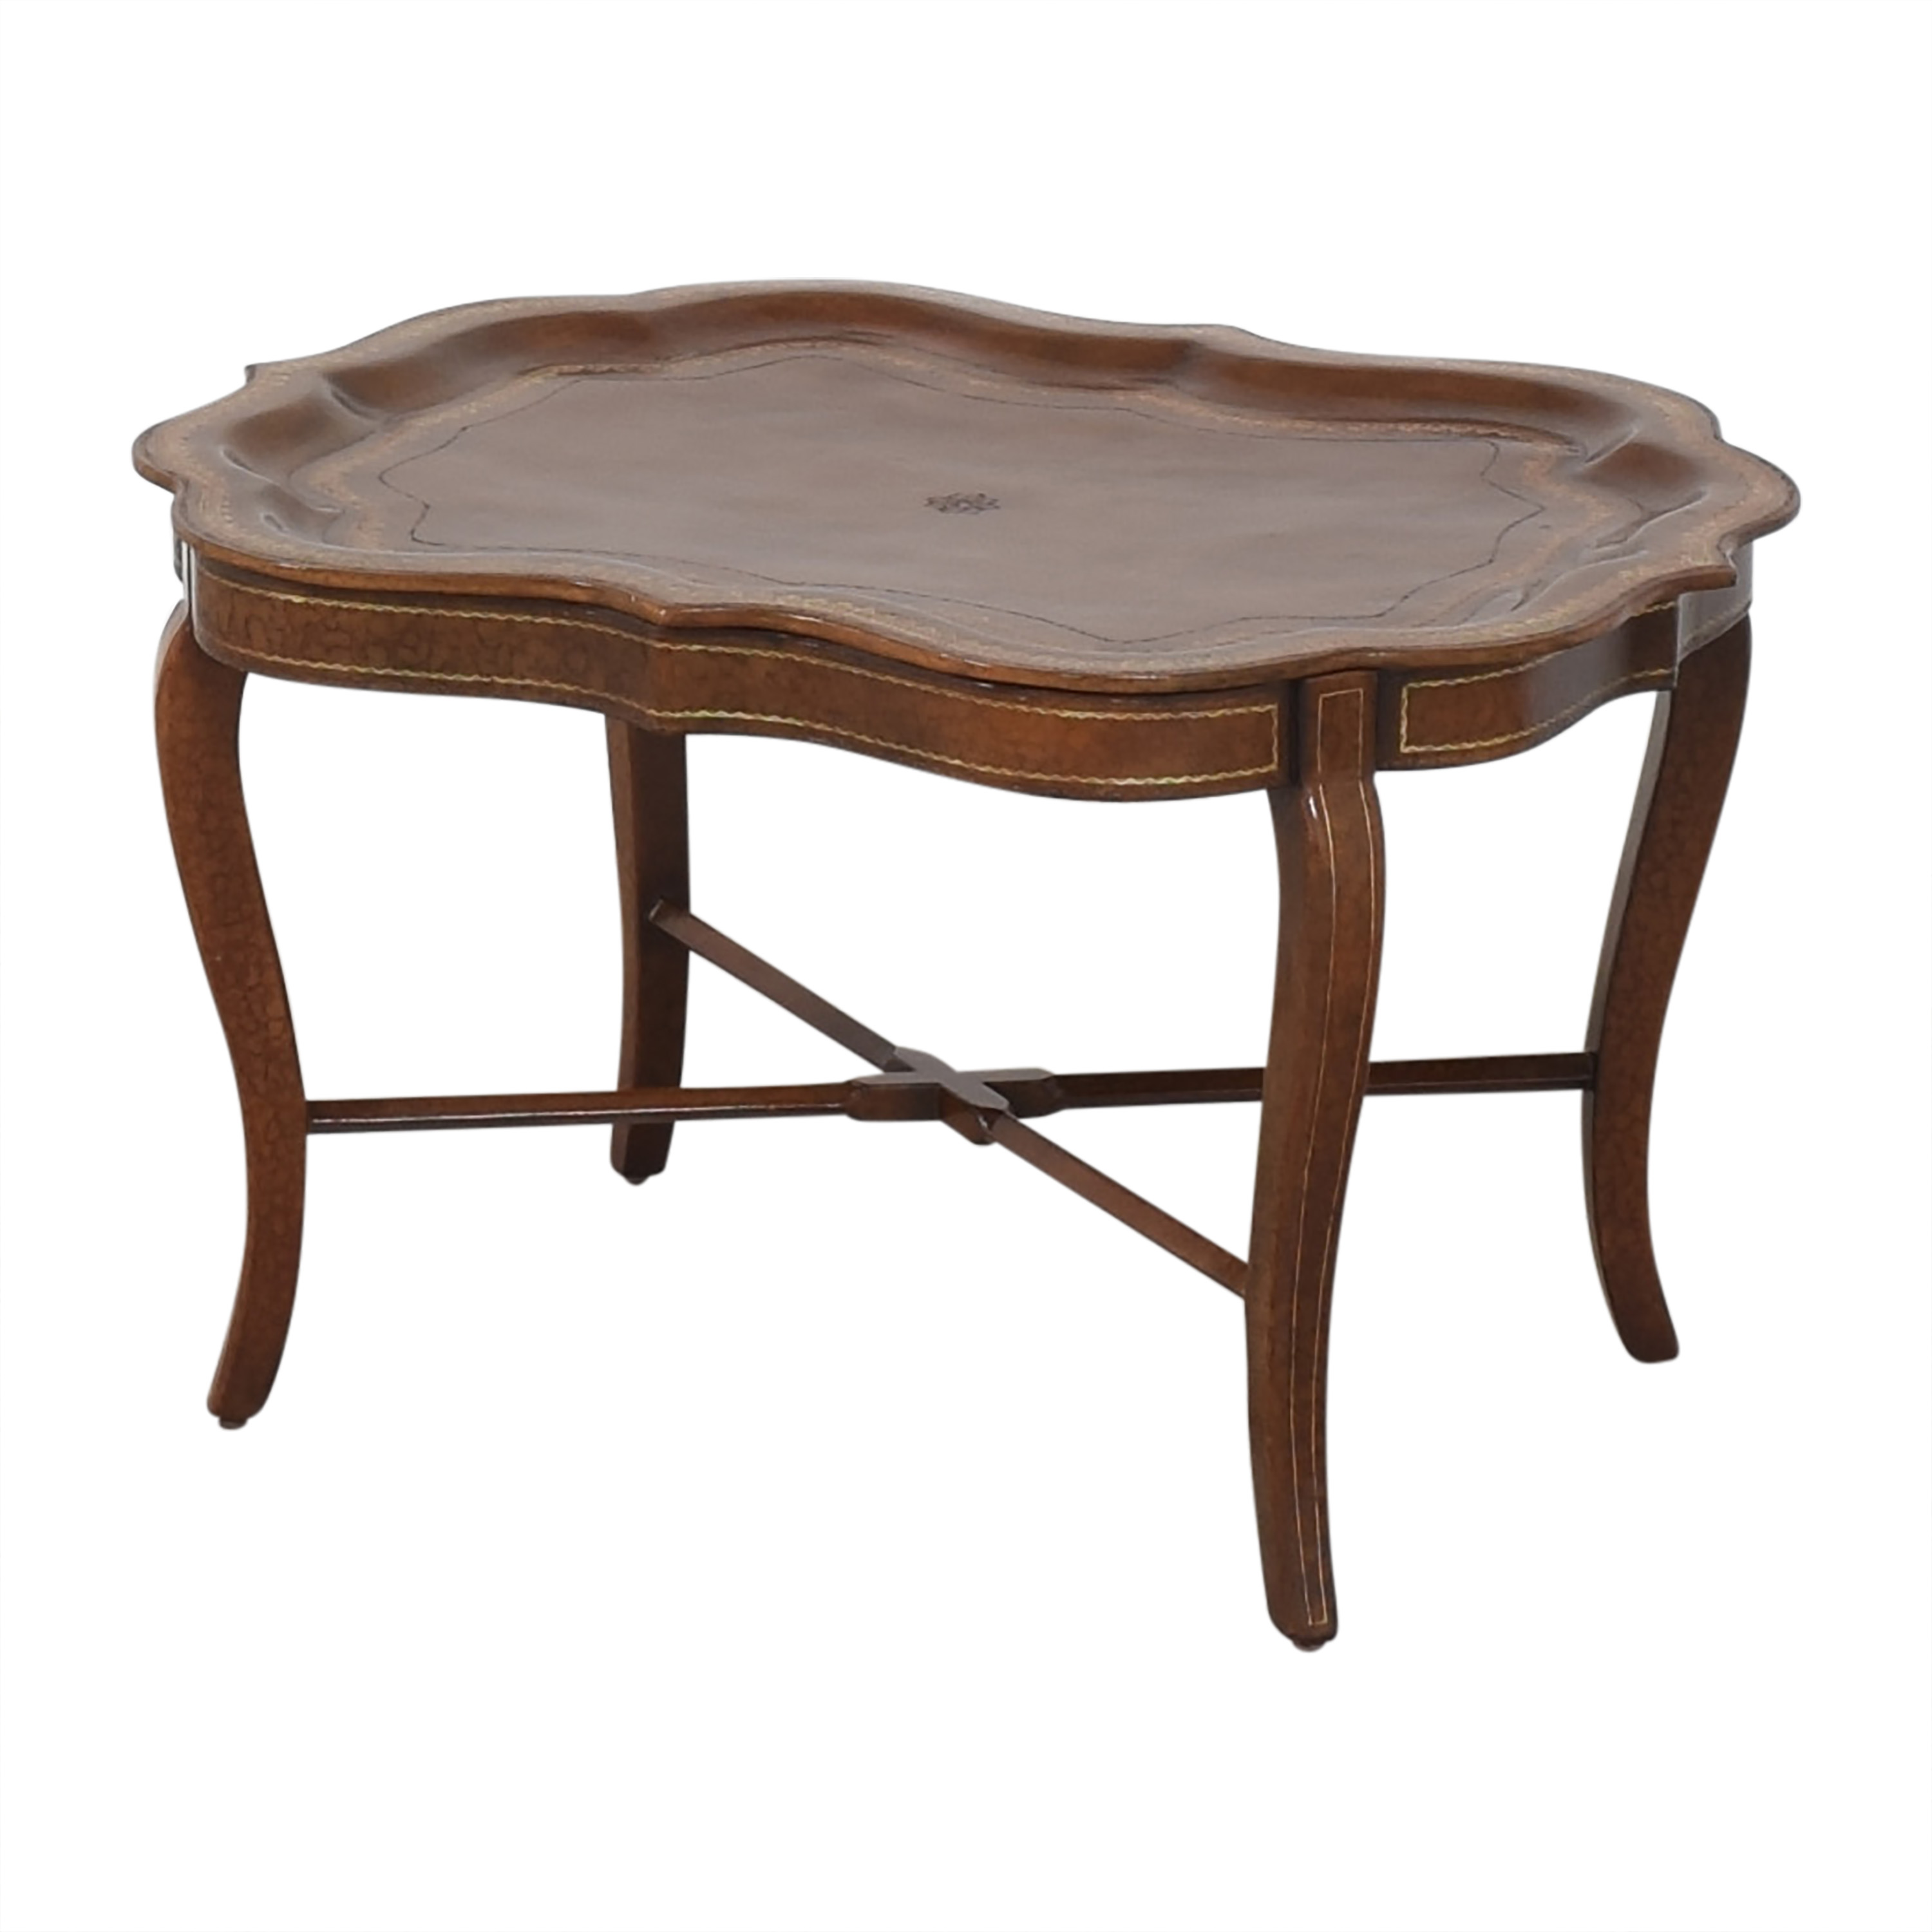 Beacon Hill Collection Beacon Hill Collection Tray Side Table ct